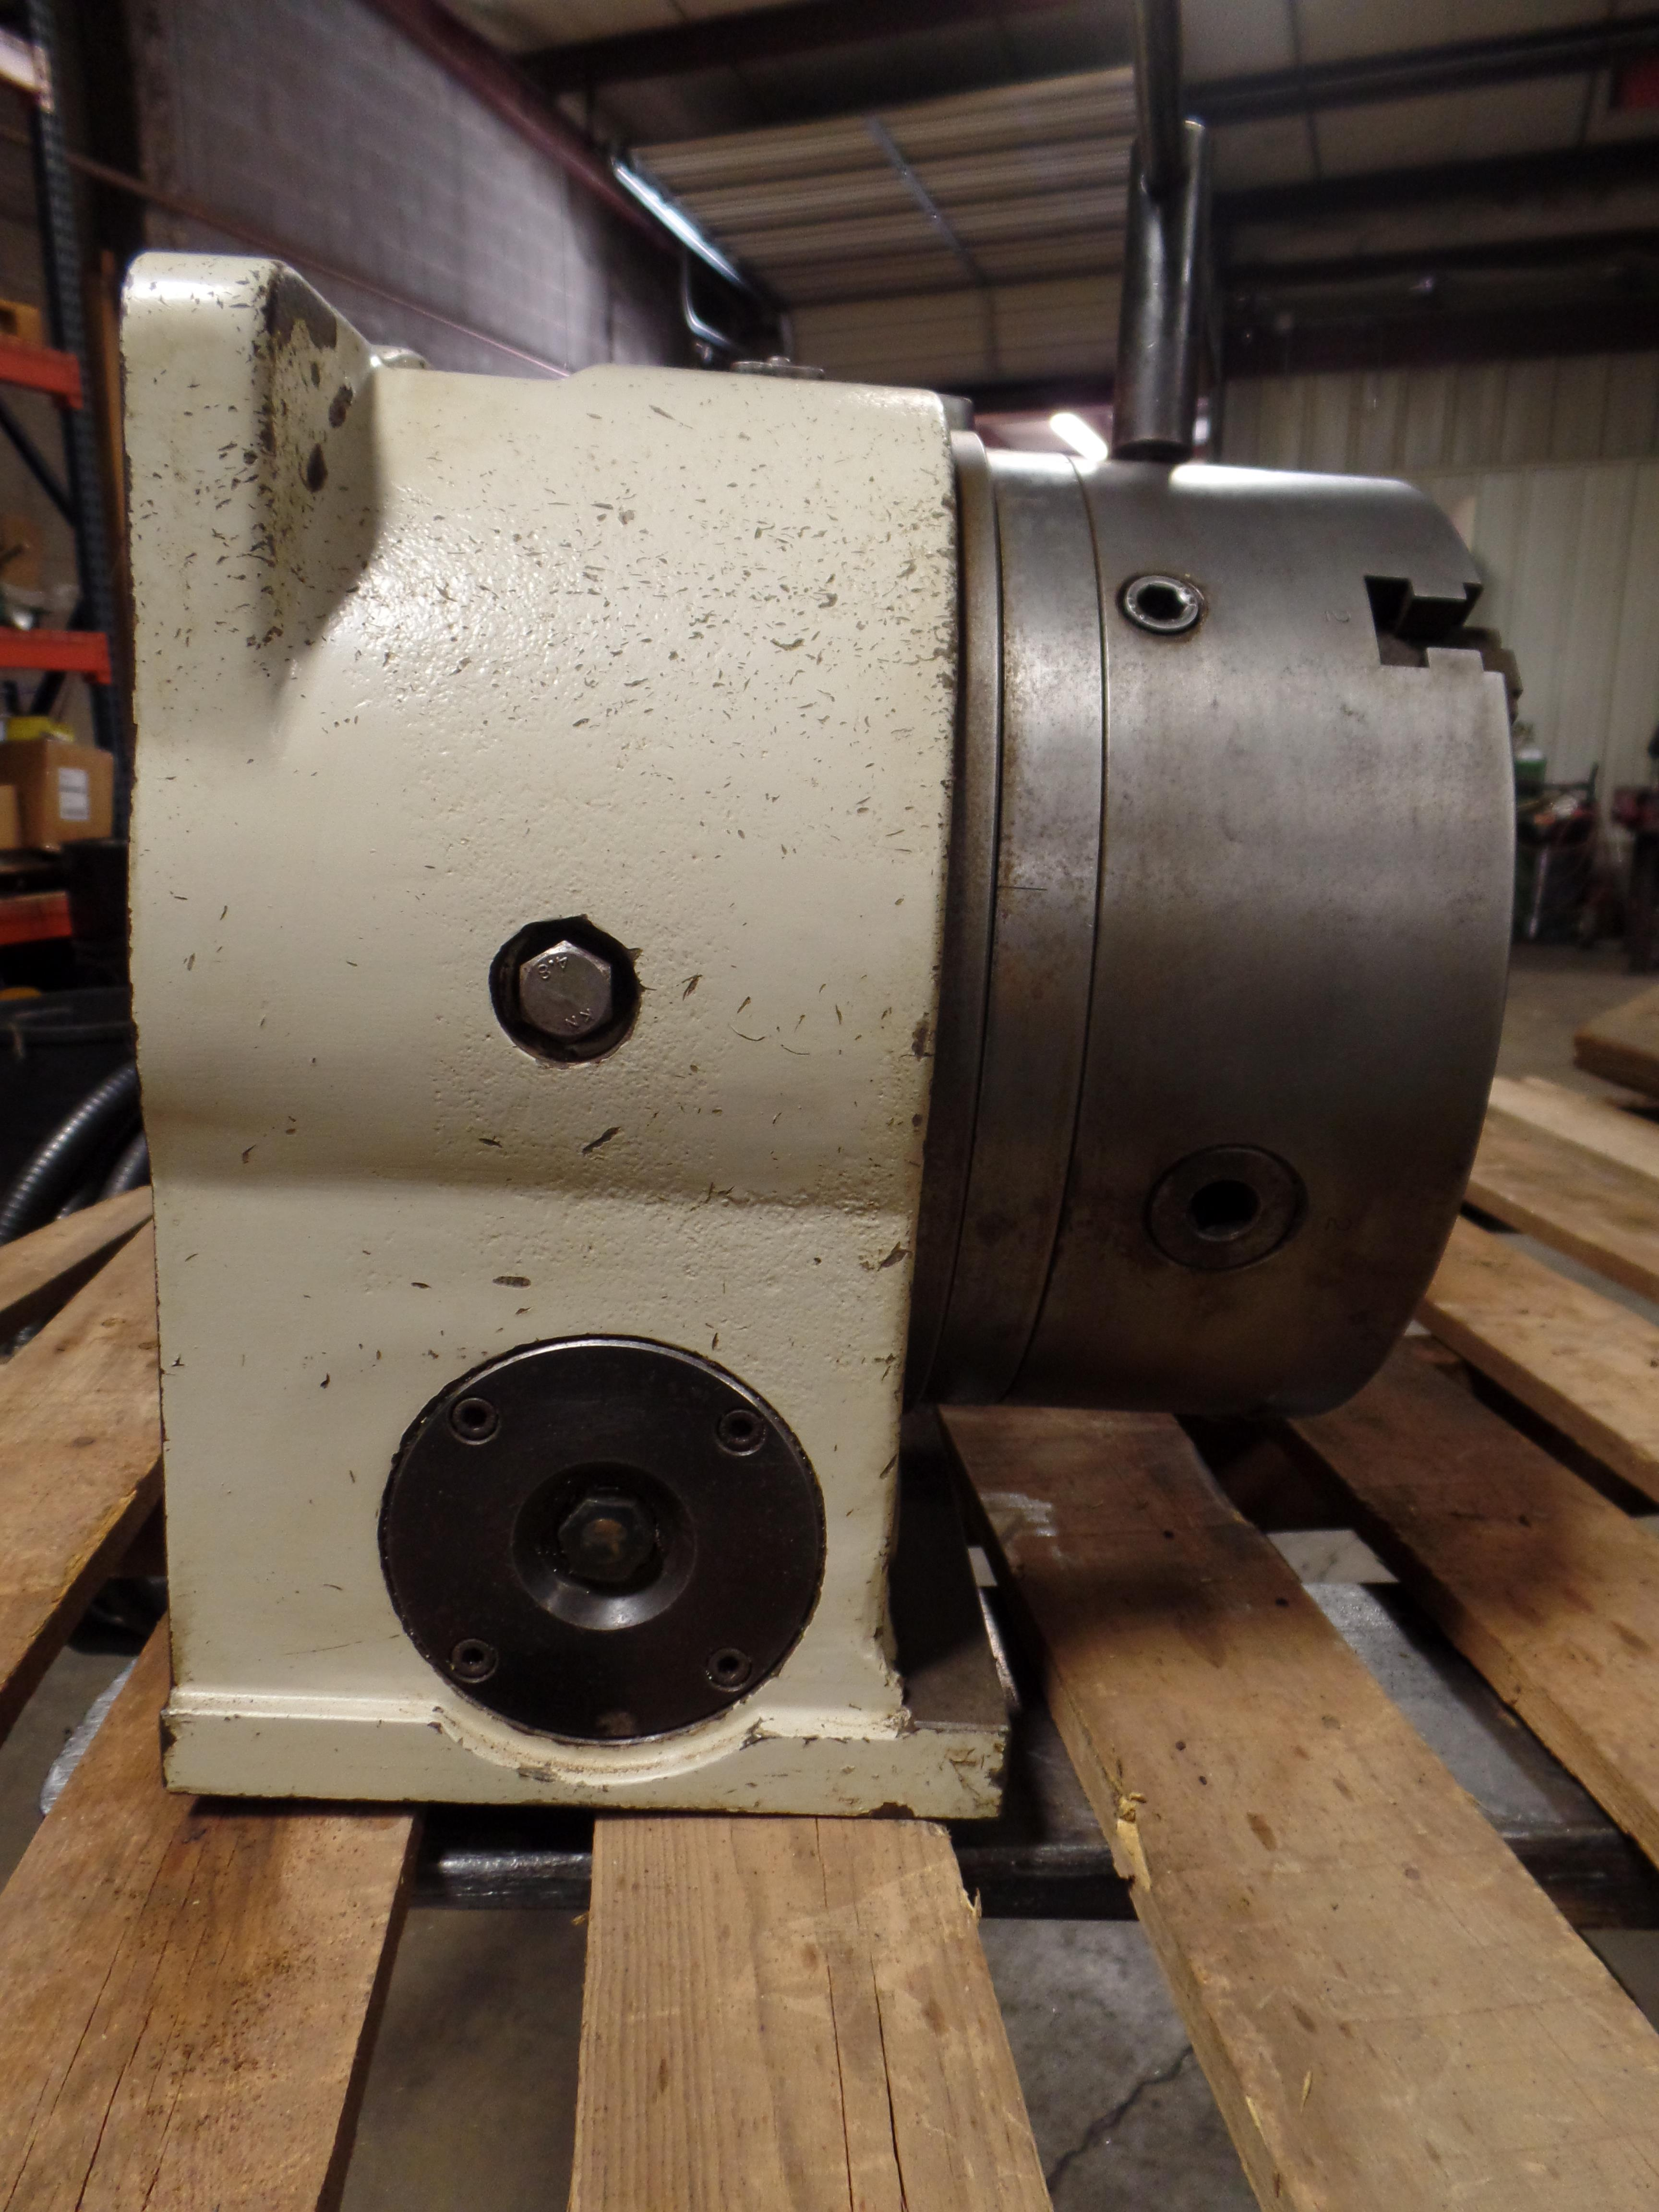 """Yuasa 4th Axis Indexer w/ control box and steady rest, 11"""" 3 jaw chuck w/hard jaws, model UDX-28001 - Image 6 of 12"""